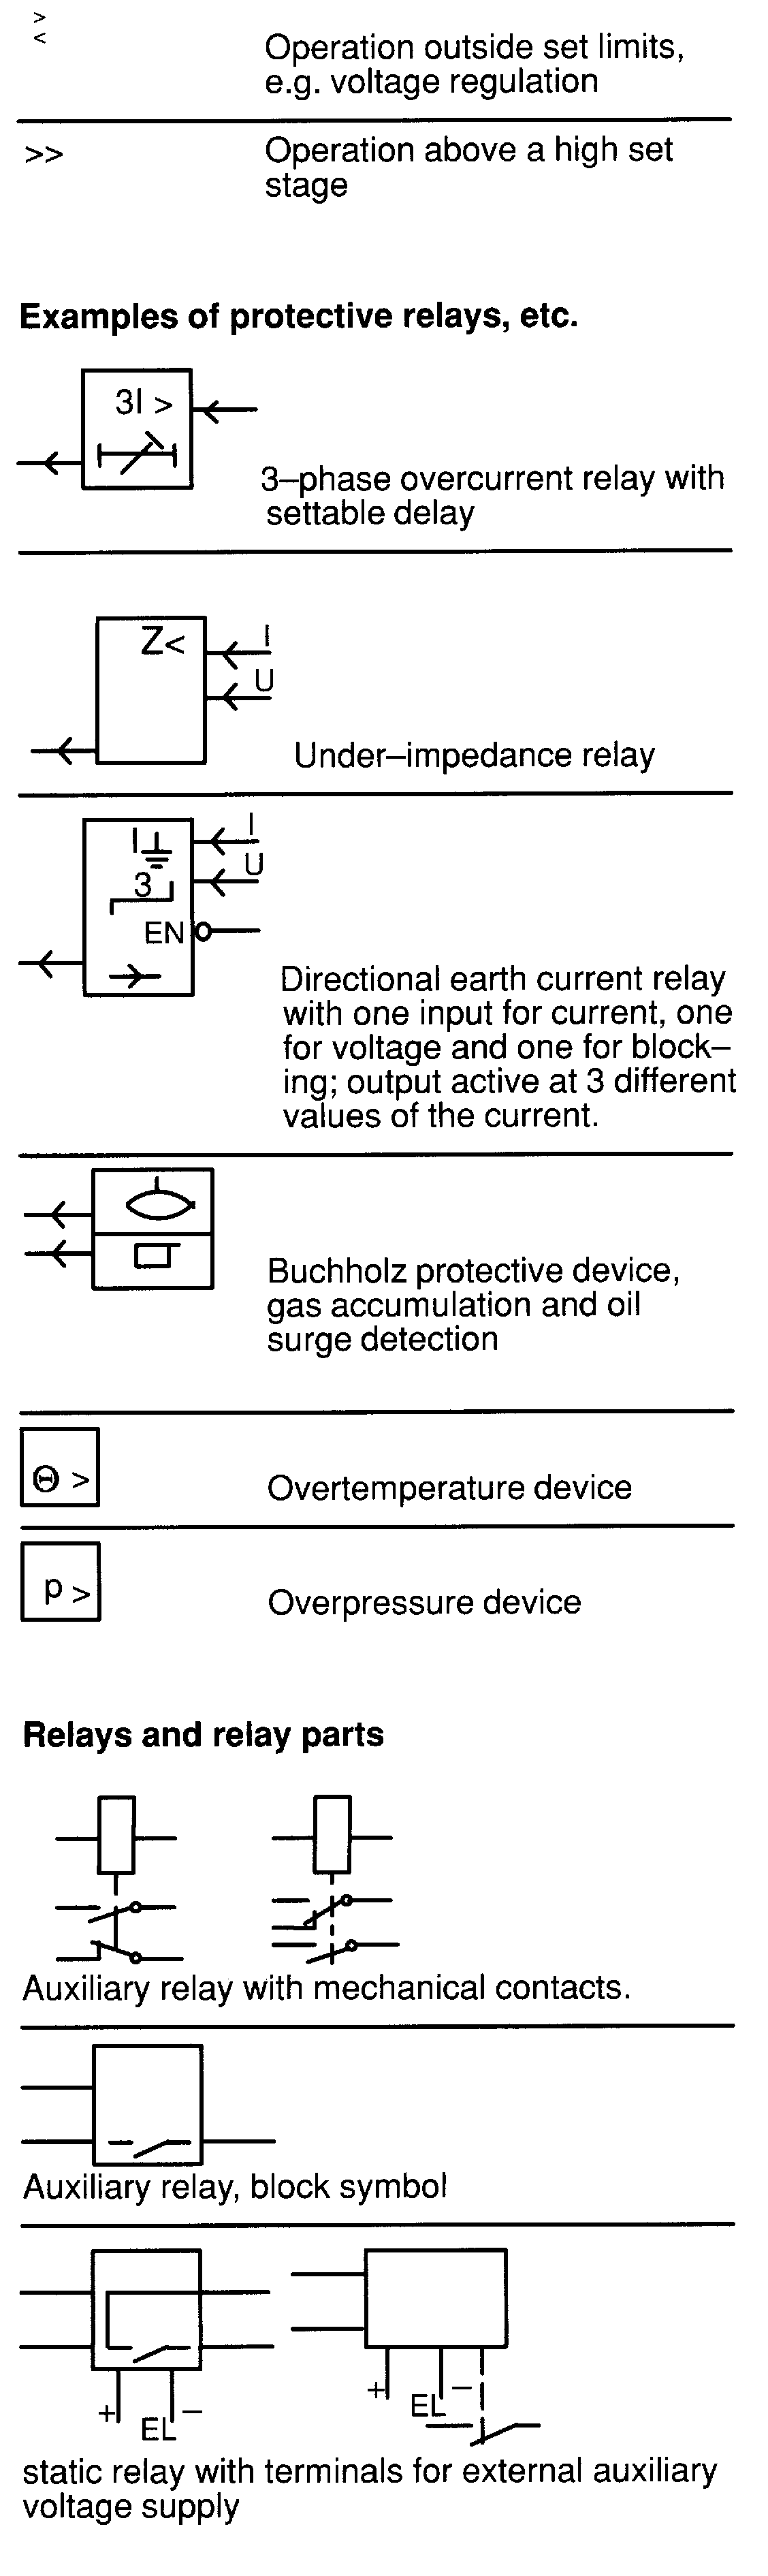 Relay Symbols And Device Numbers Selection From Iec 617 Operating Time 2 Delay Starting Or Closing Is A That Functions To Give Desired Amount Of Before After Any Point Operation In